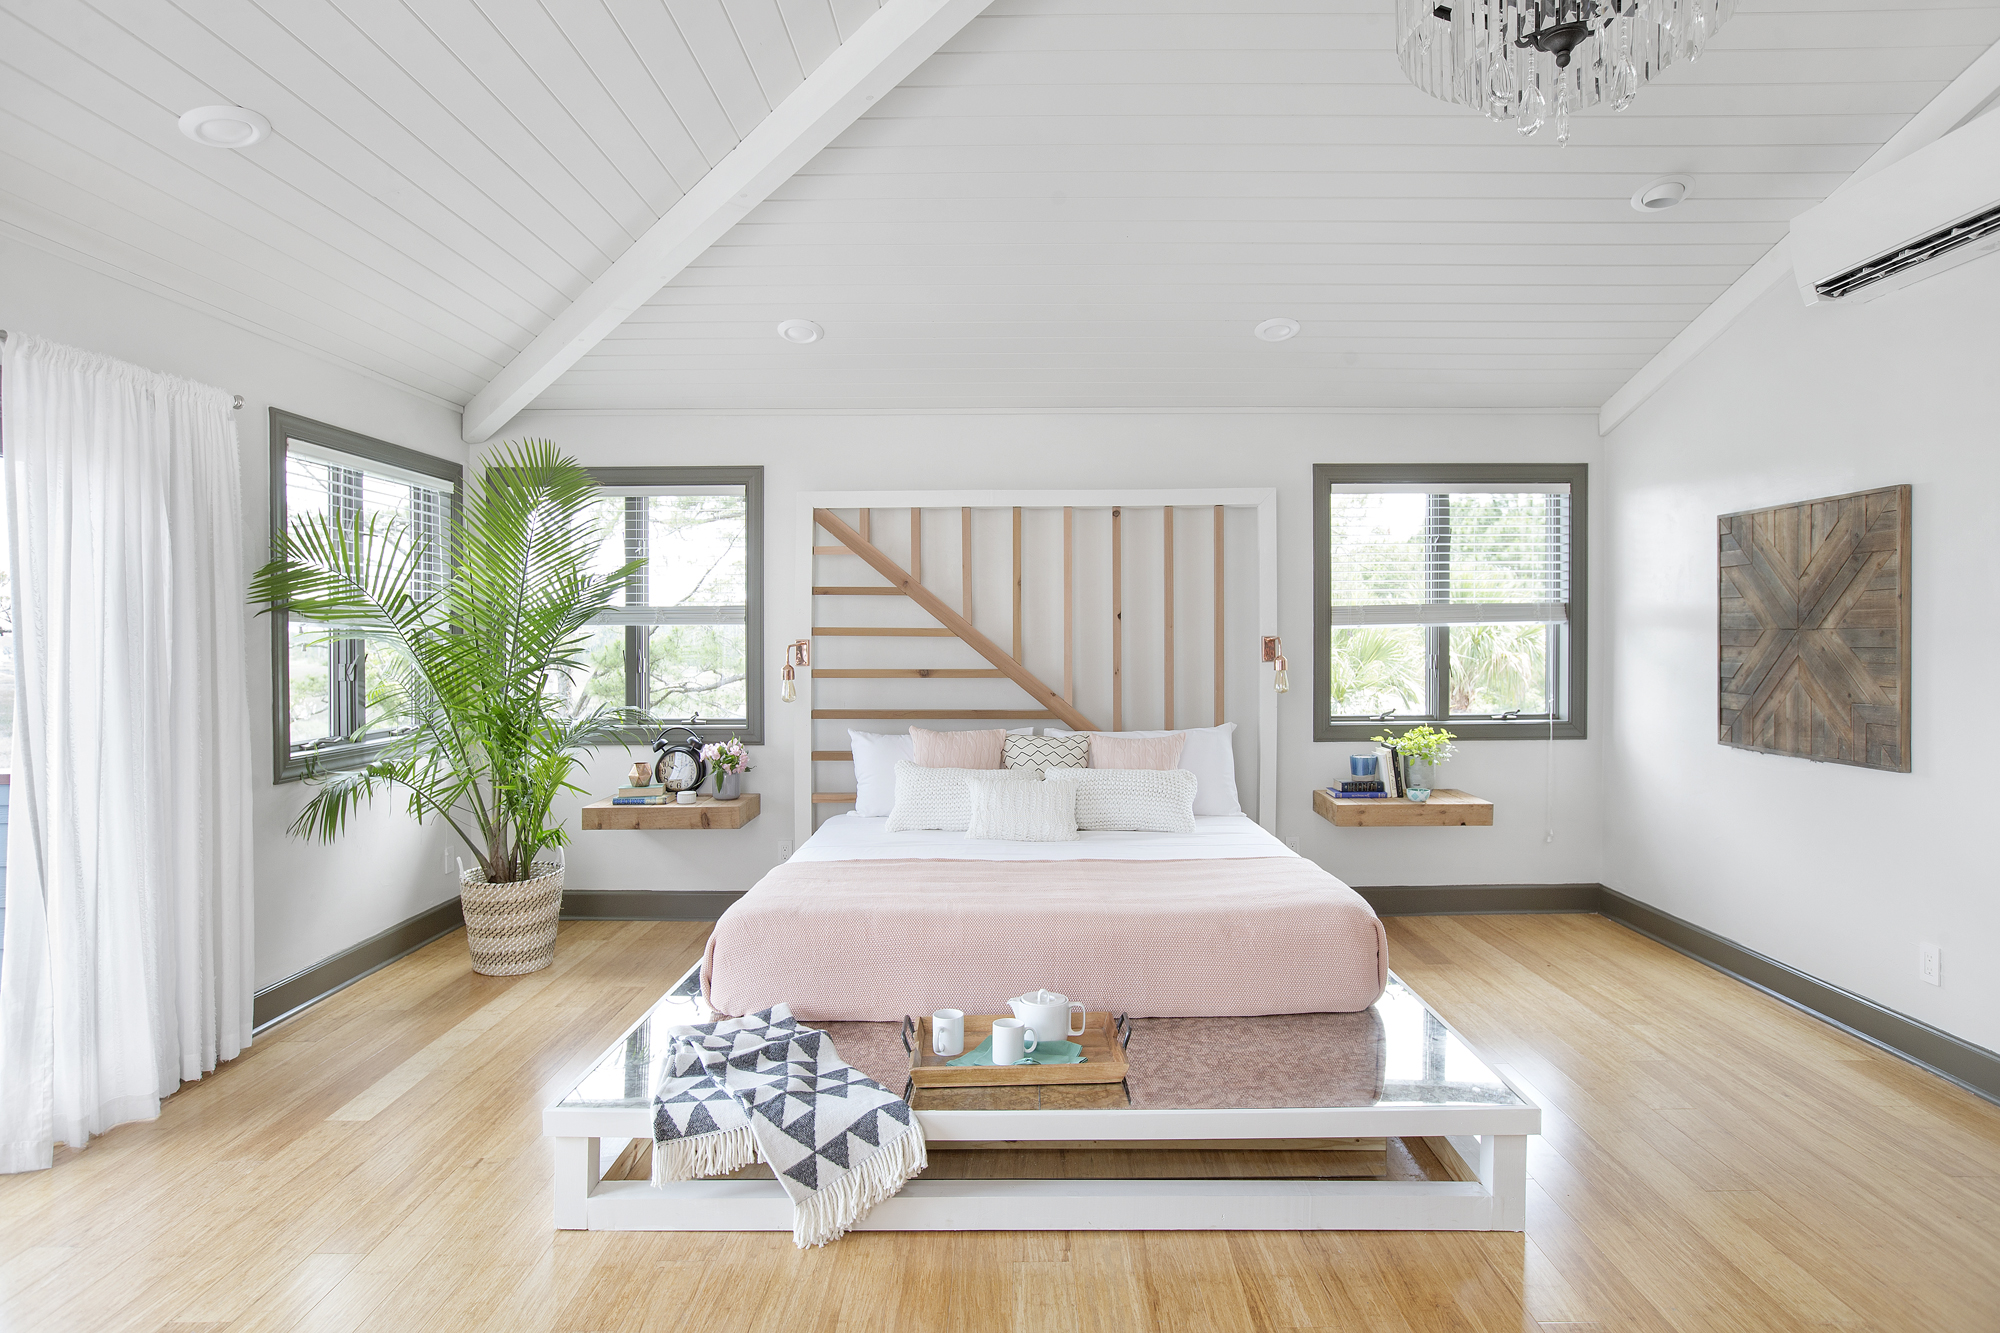 Serenity defines the mood of the master bedroom: A minimalist, clutter-free approach is softened with pale pinks, natural woods and a gabled ceiling.